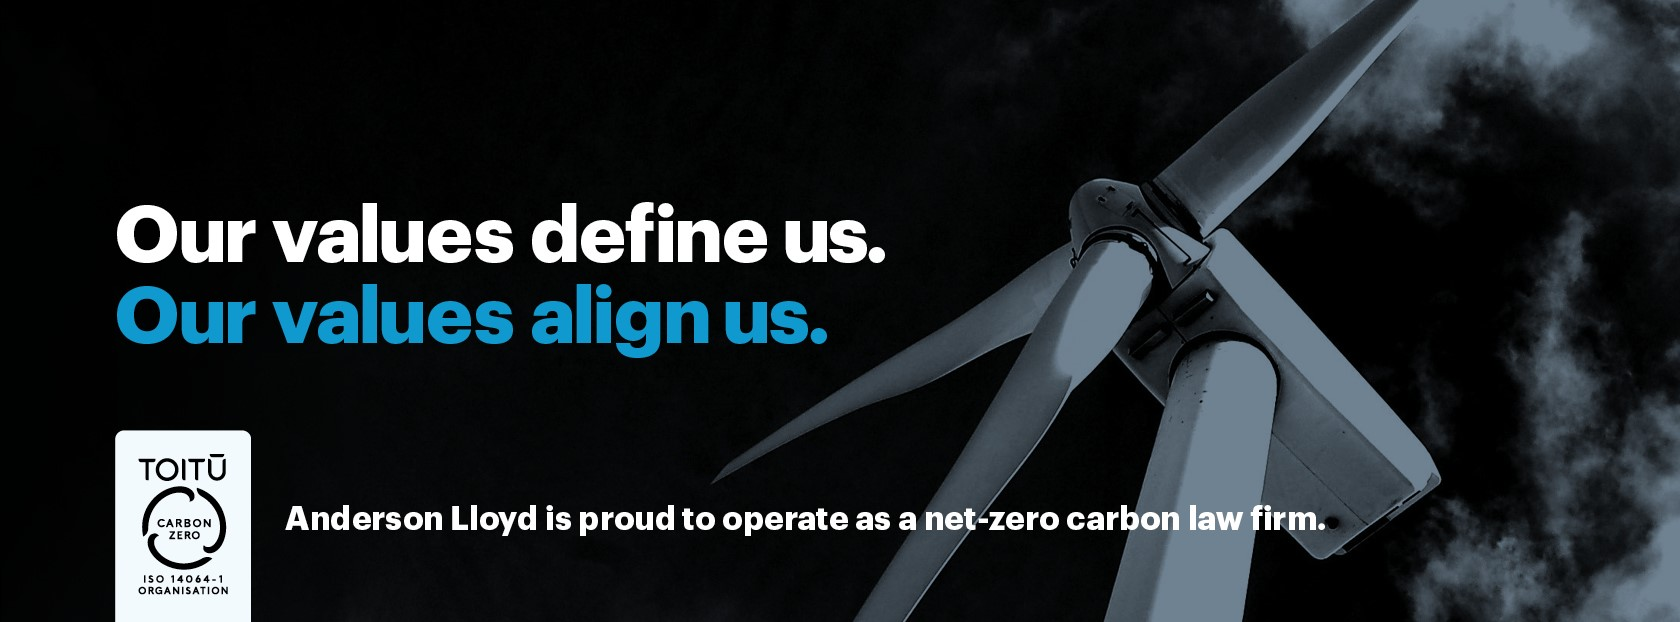 Anderson Lloyd is proud to operate as a net-zero carbon law firm